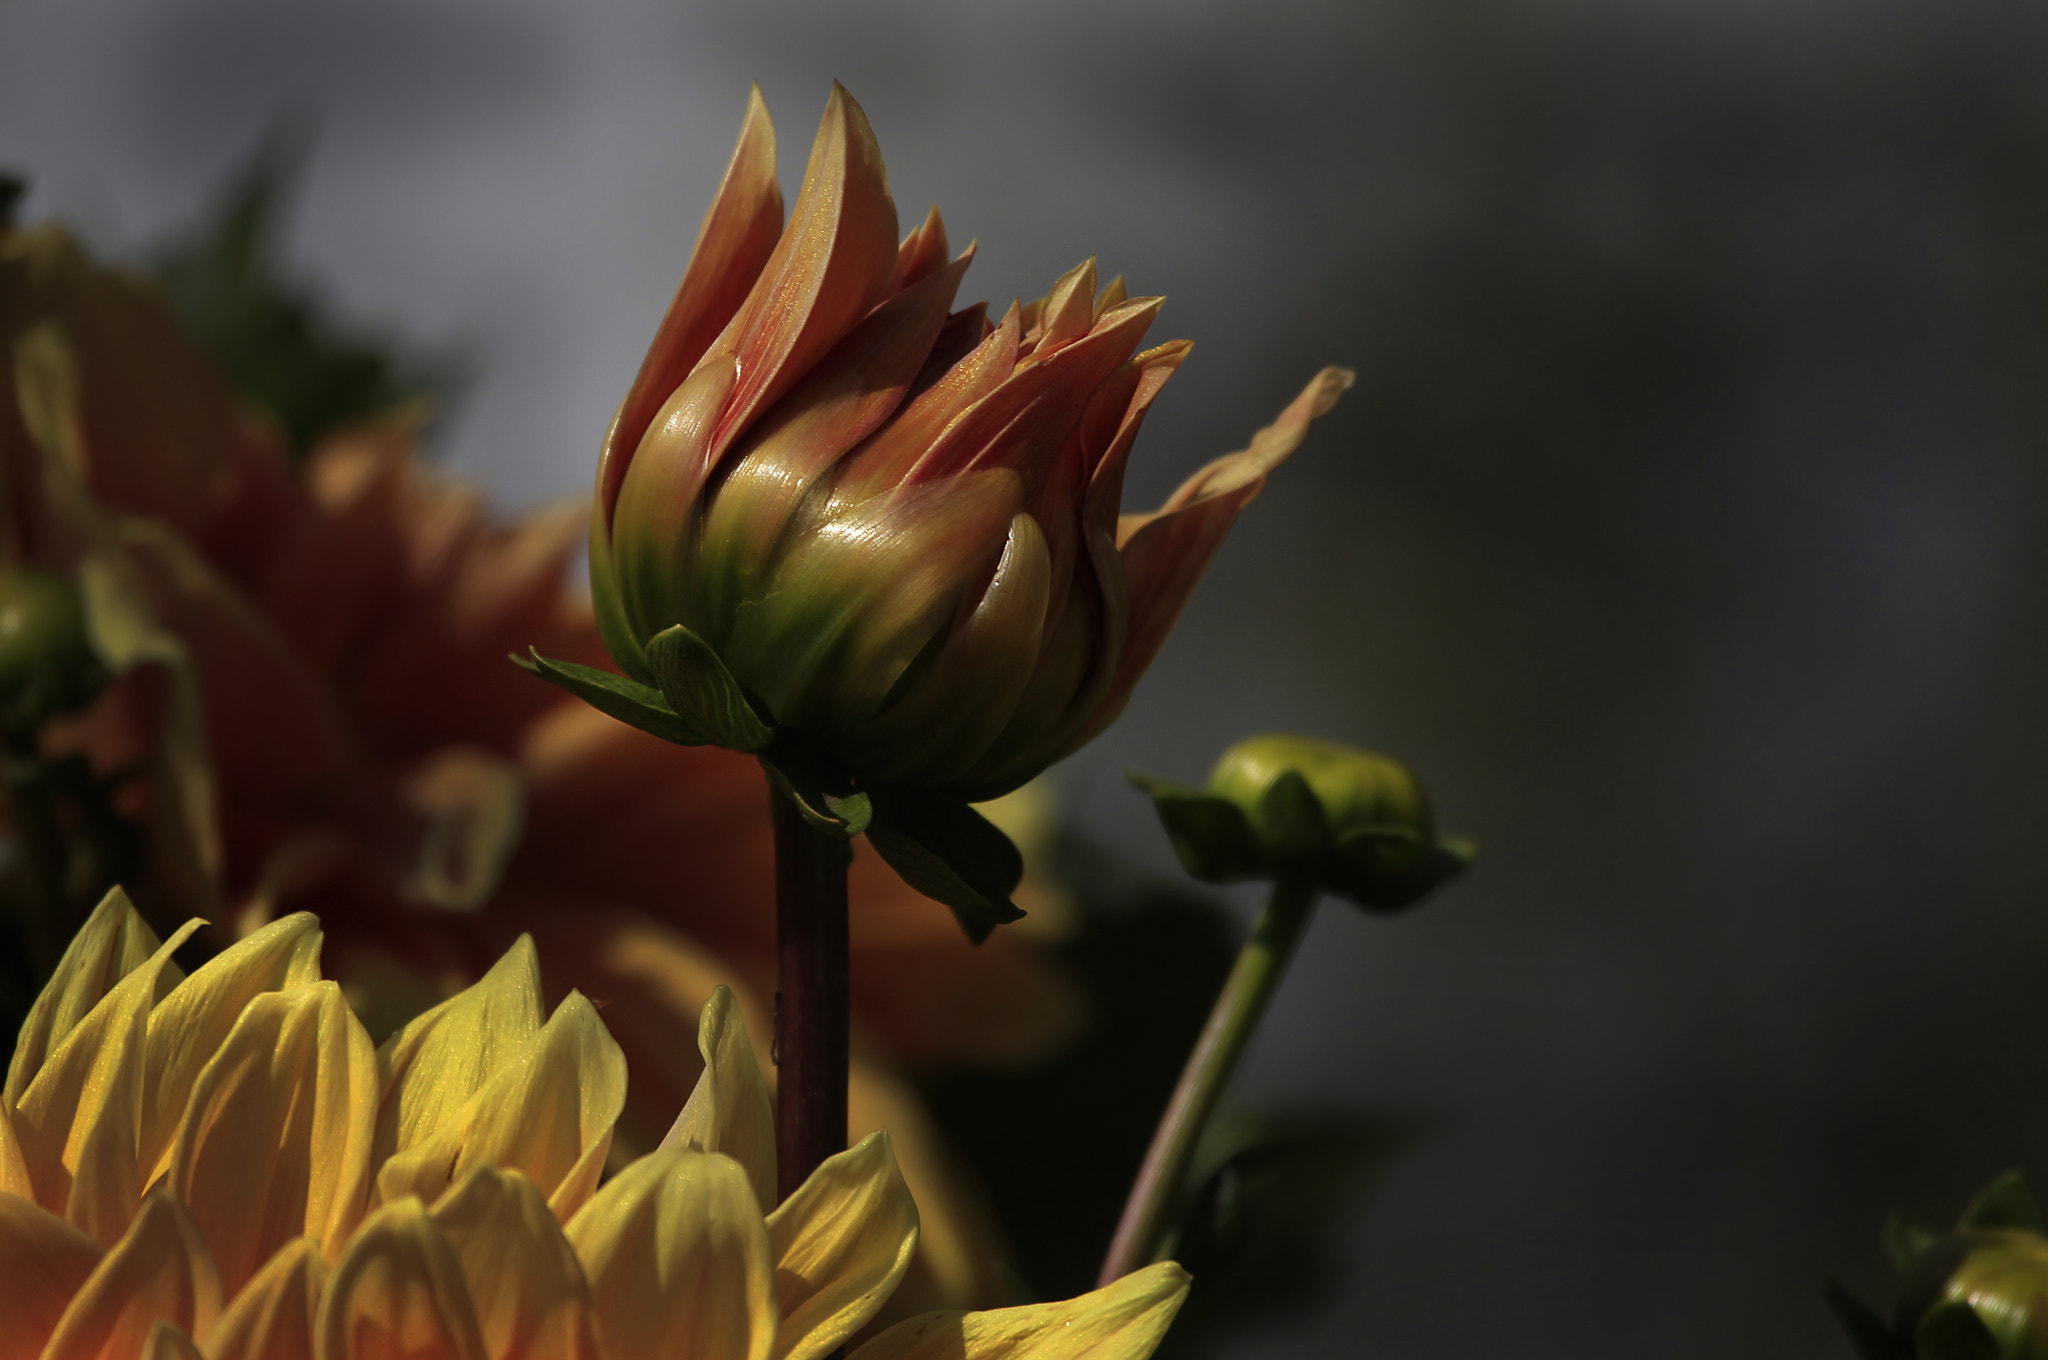 Photograph Dahlia s button by Cristobal Garciaferro Rubio on 500px